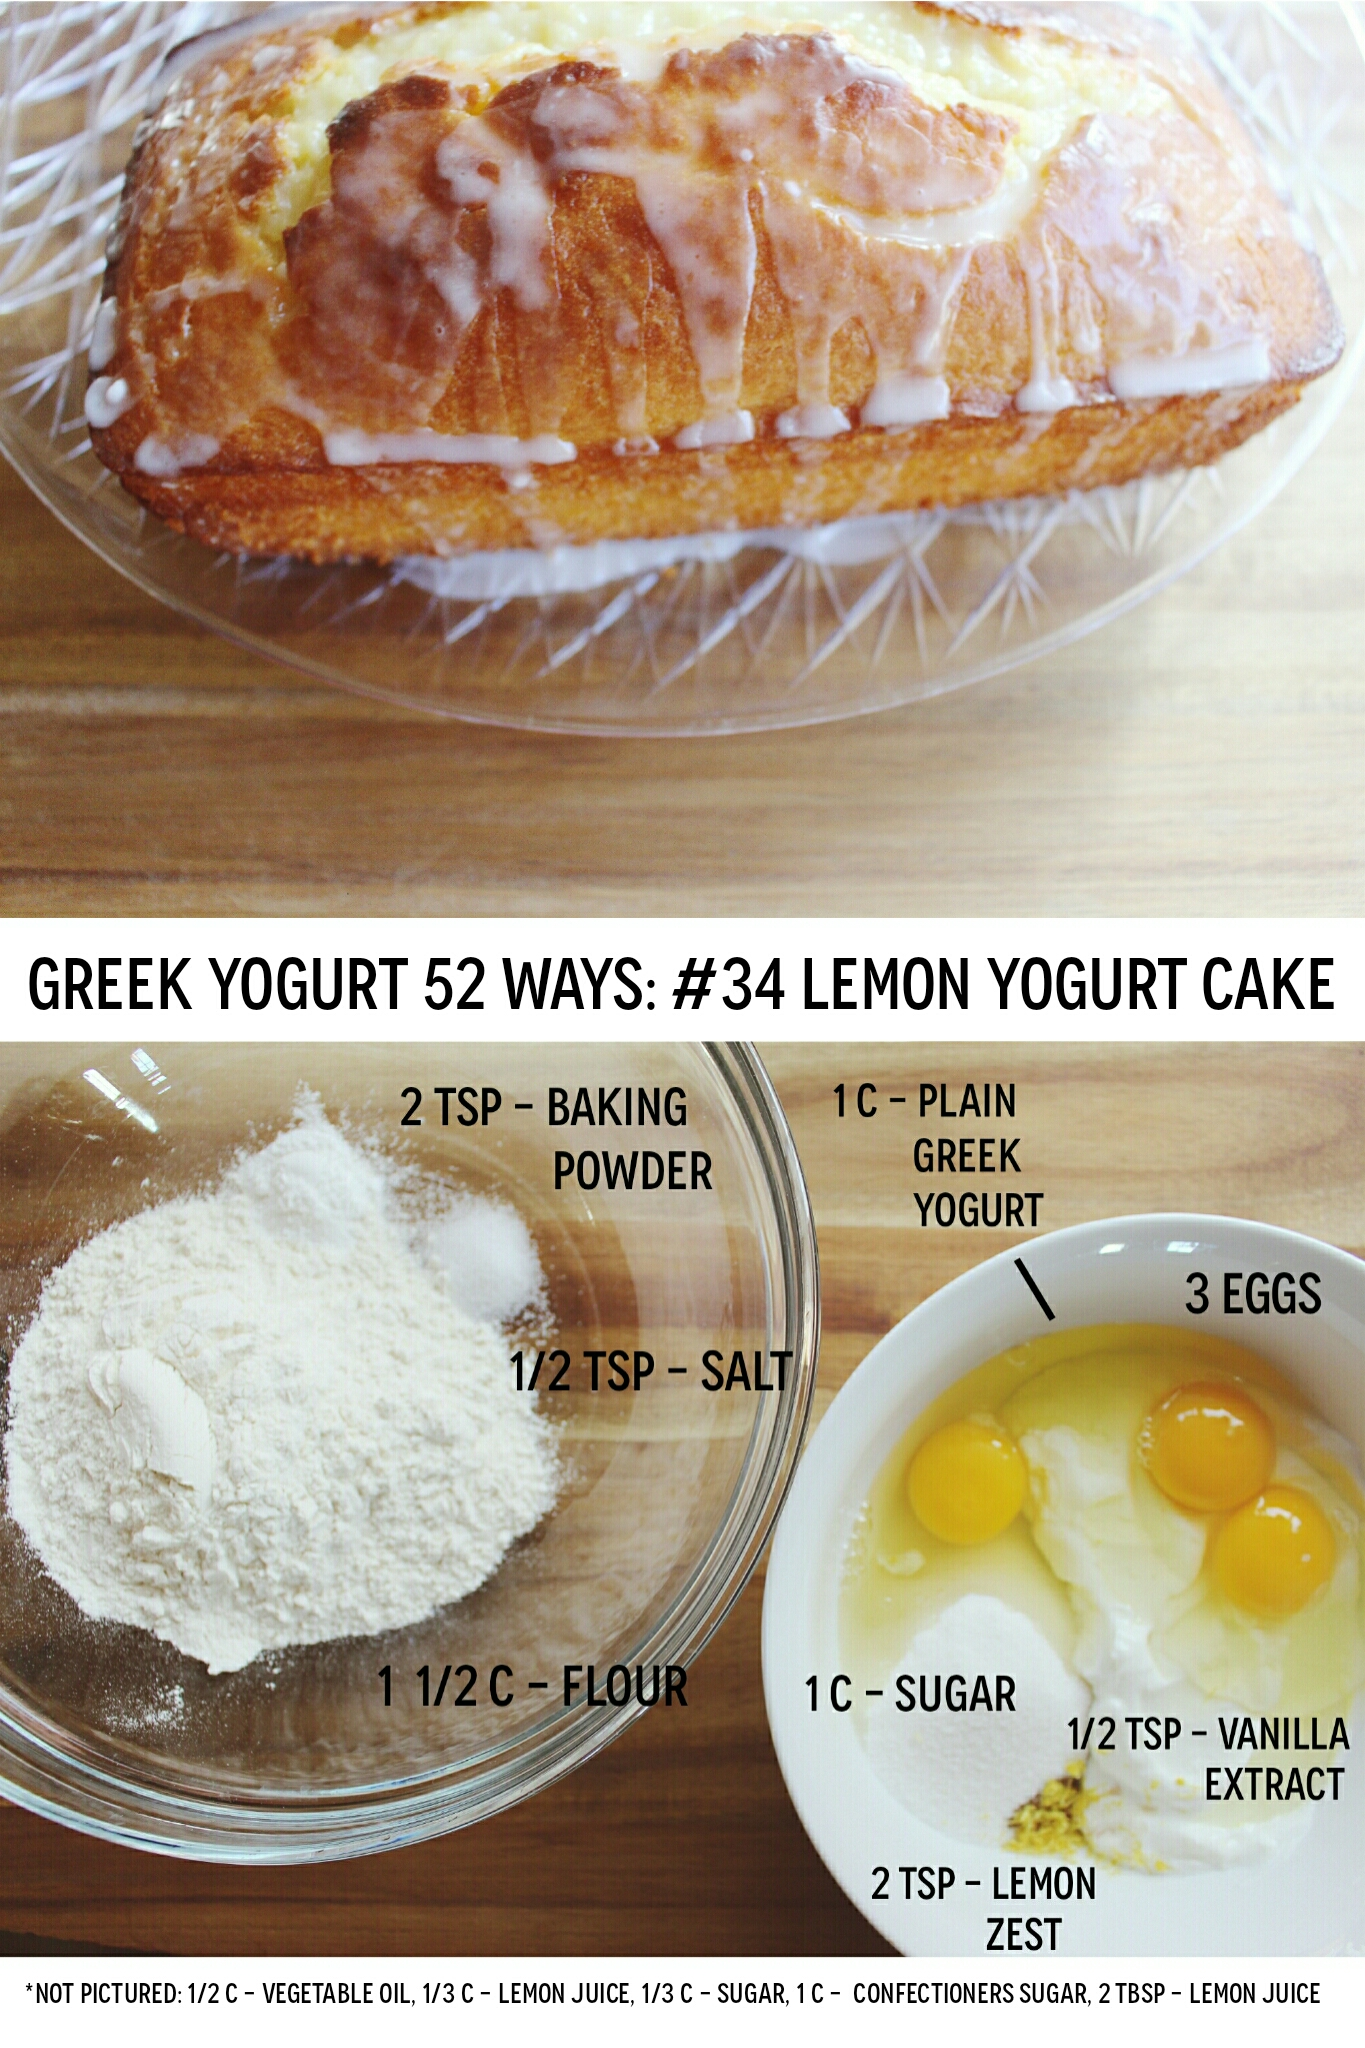 greek yogurt 52 ways: # 34 lemon yogurt cake